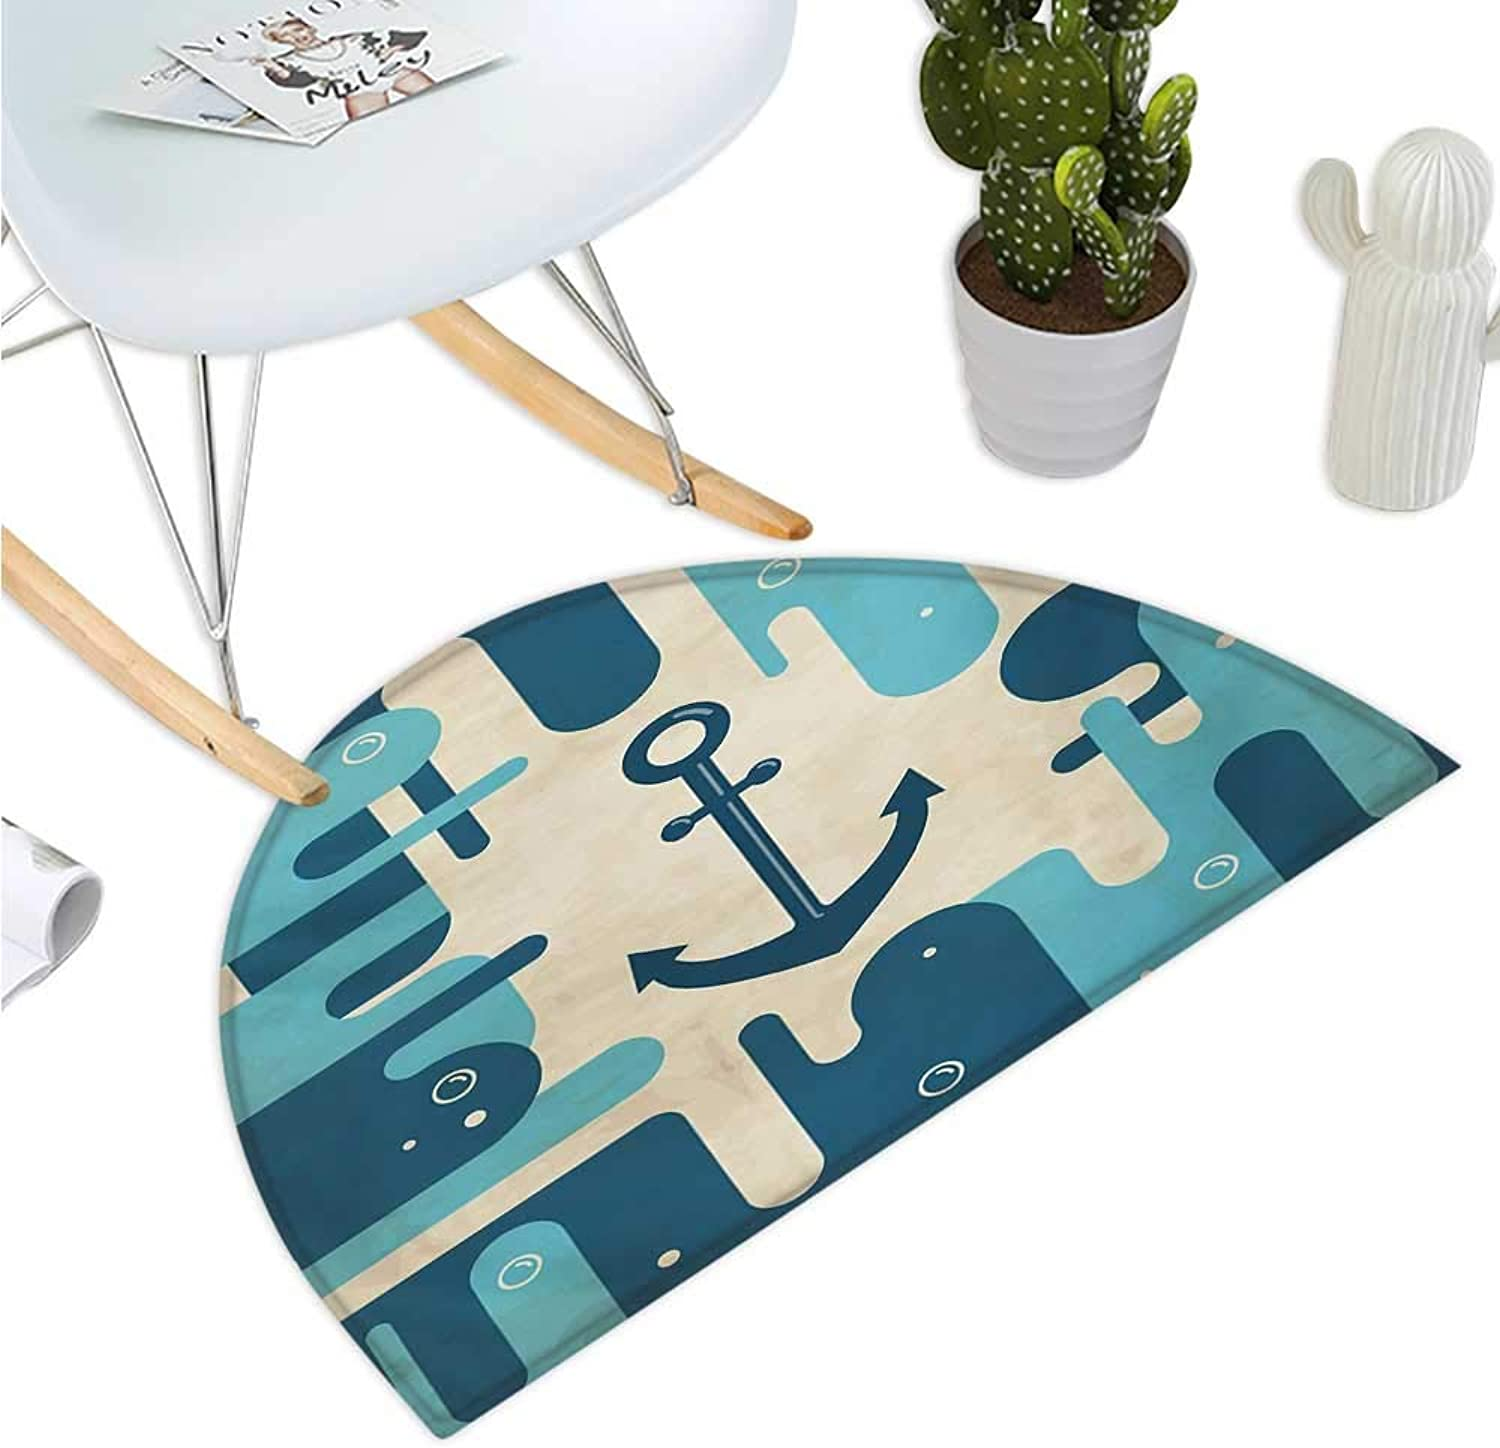 Anchor Semicircle Doormat Nautical Sea Inspired Abstract Design with Bubble Like Shapes Retro Halfmoon doormats H 43.3  xD 64.9  Cream Pale bluee Dark bluee